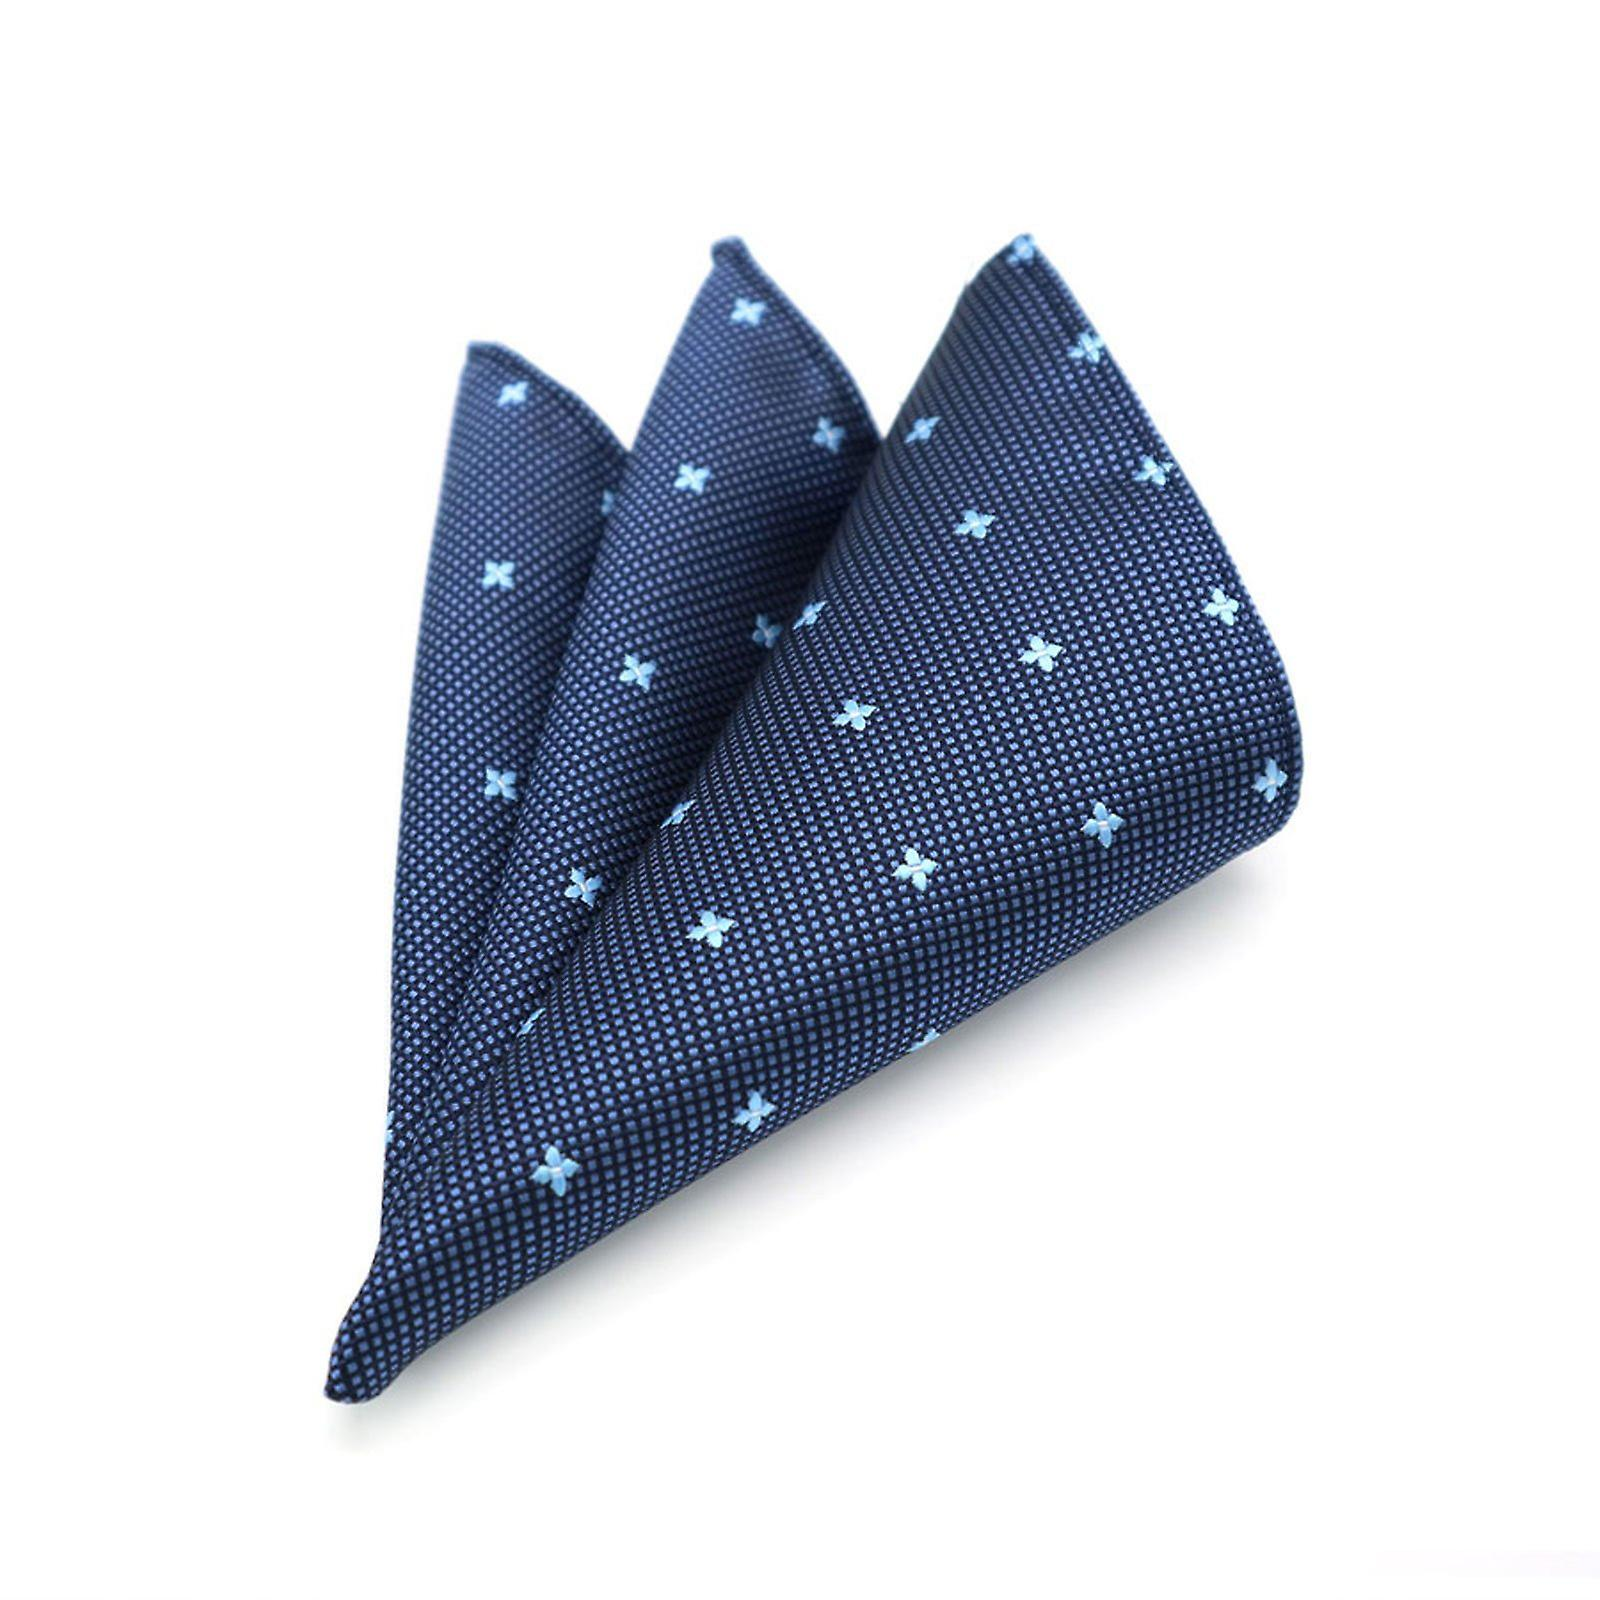 Dark & light blue ditsy pattern pocket square & tie set